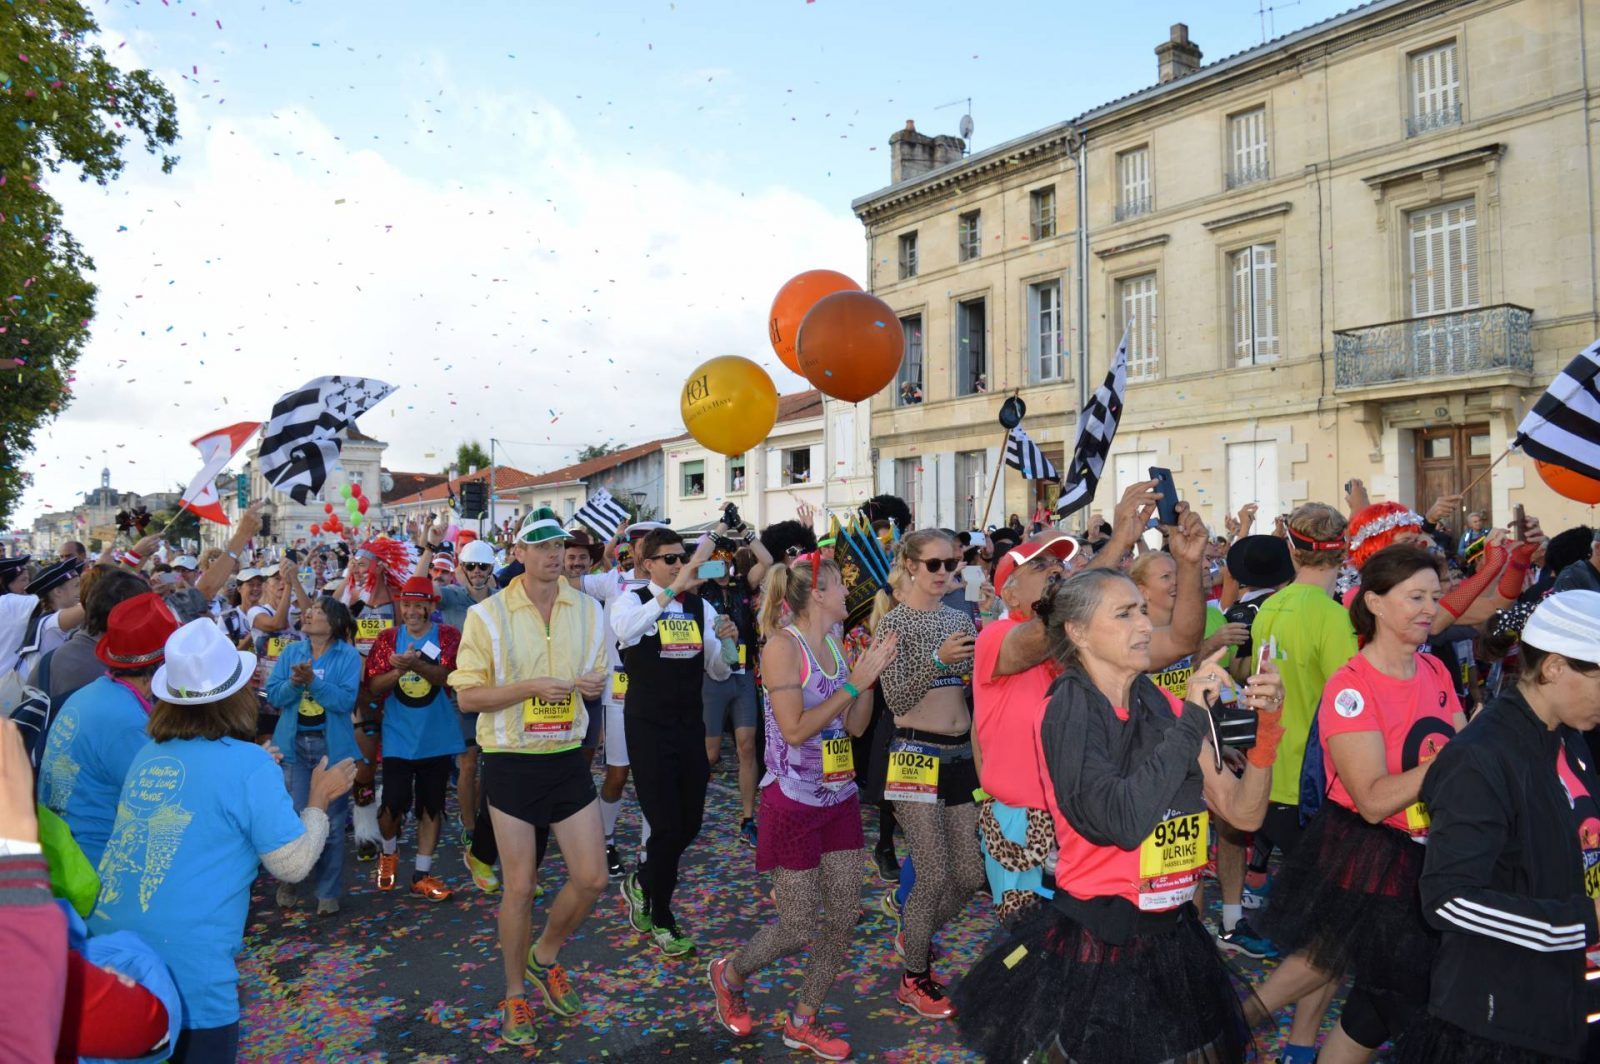 Running the Marathon du Medoc start line